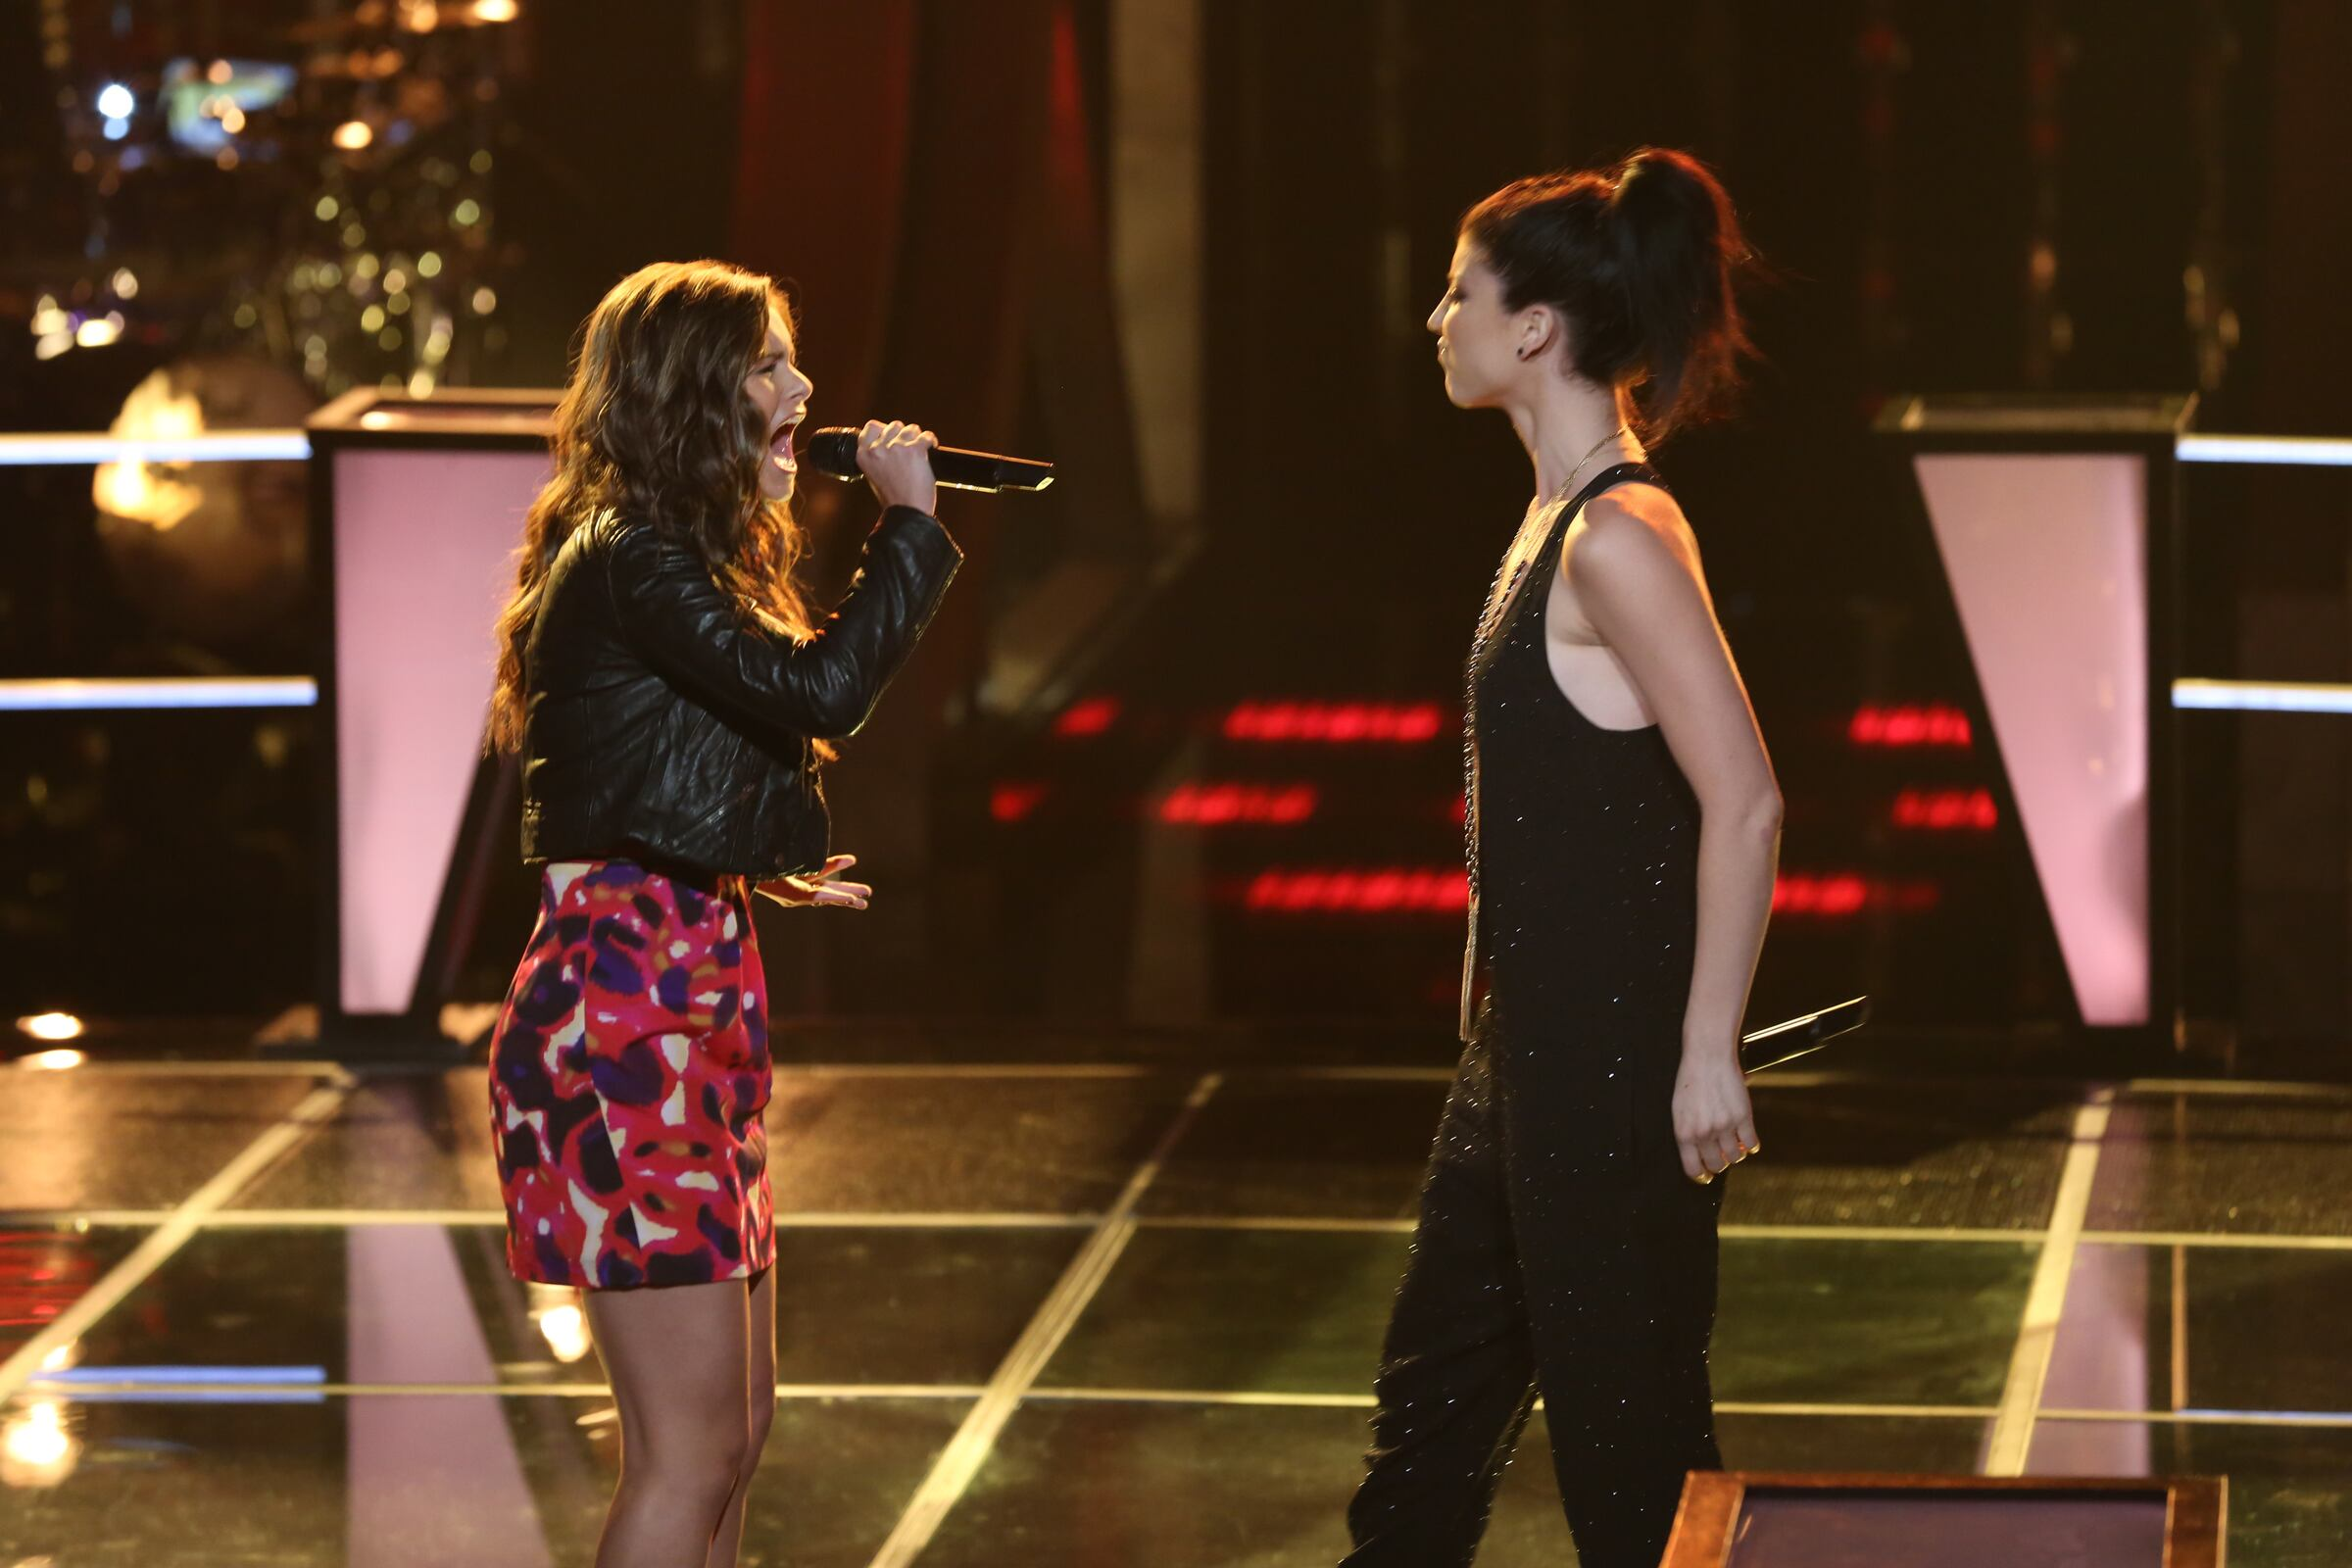 """Preparing her for the battle rounds, Team Christina's advisor Ed Sheeran told Jacquie to find a personal connection to the song she would sing. She followed his advice and beat Briana Cuoco with """"House of the Rising Sun."""""""